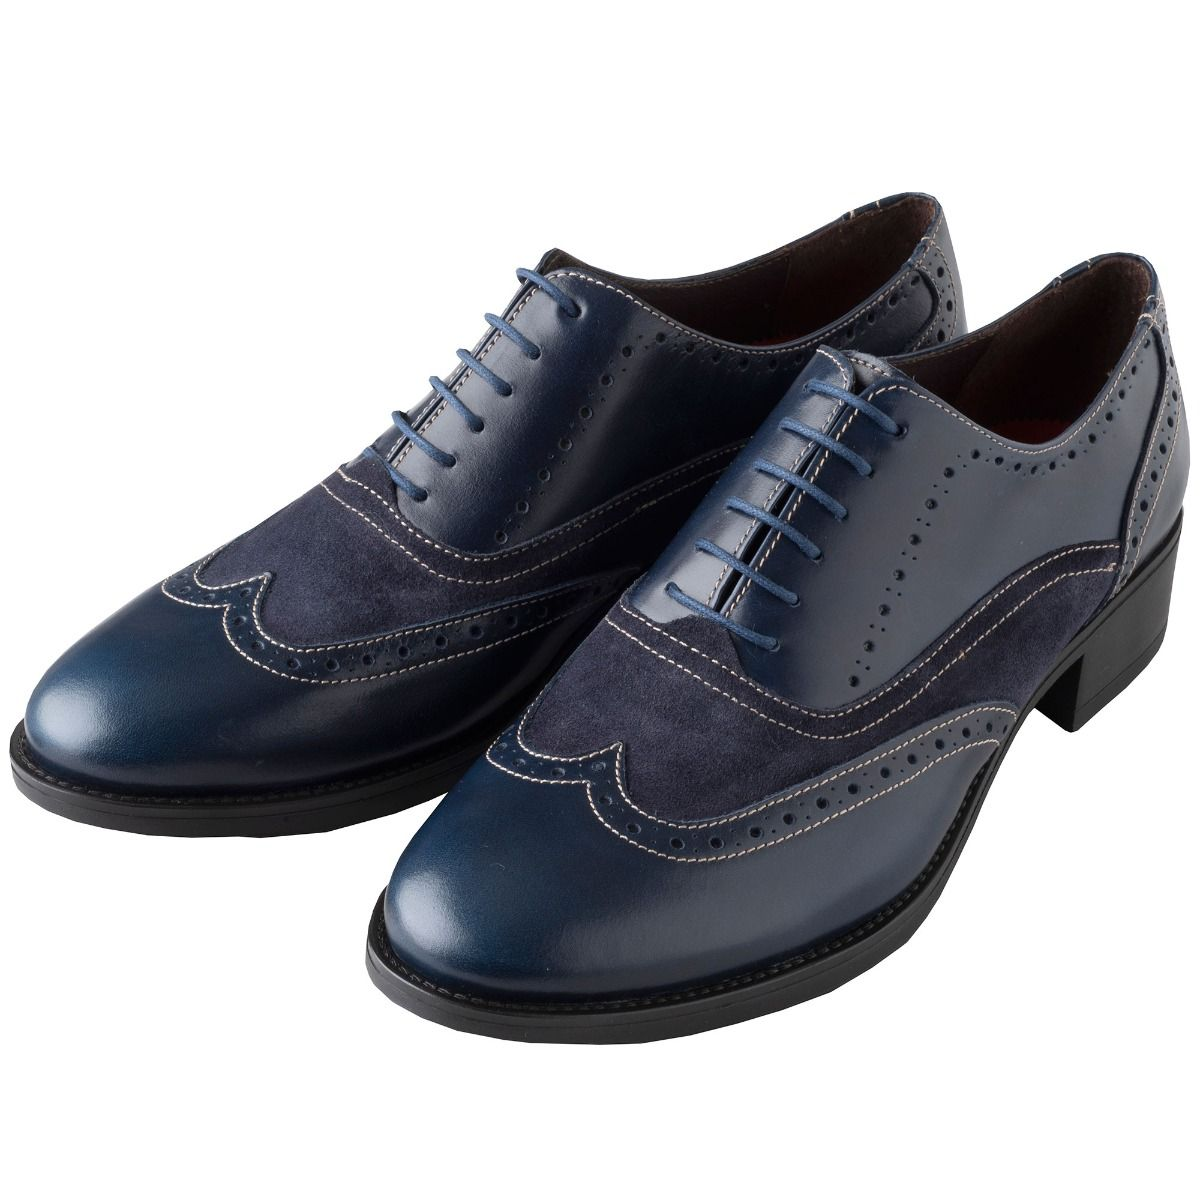 Navy Leather and Suede Brogue Shoes